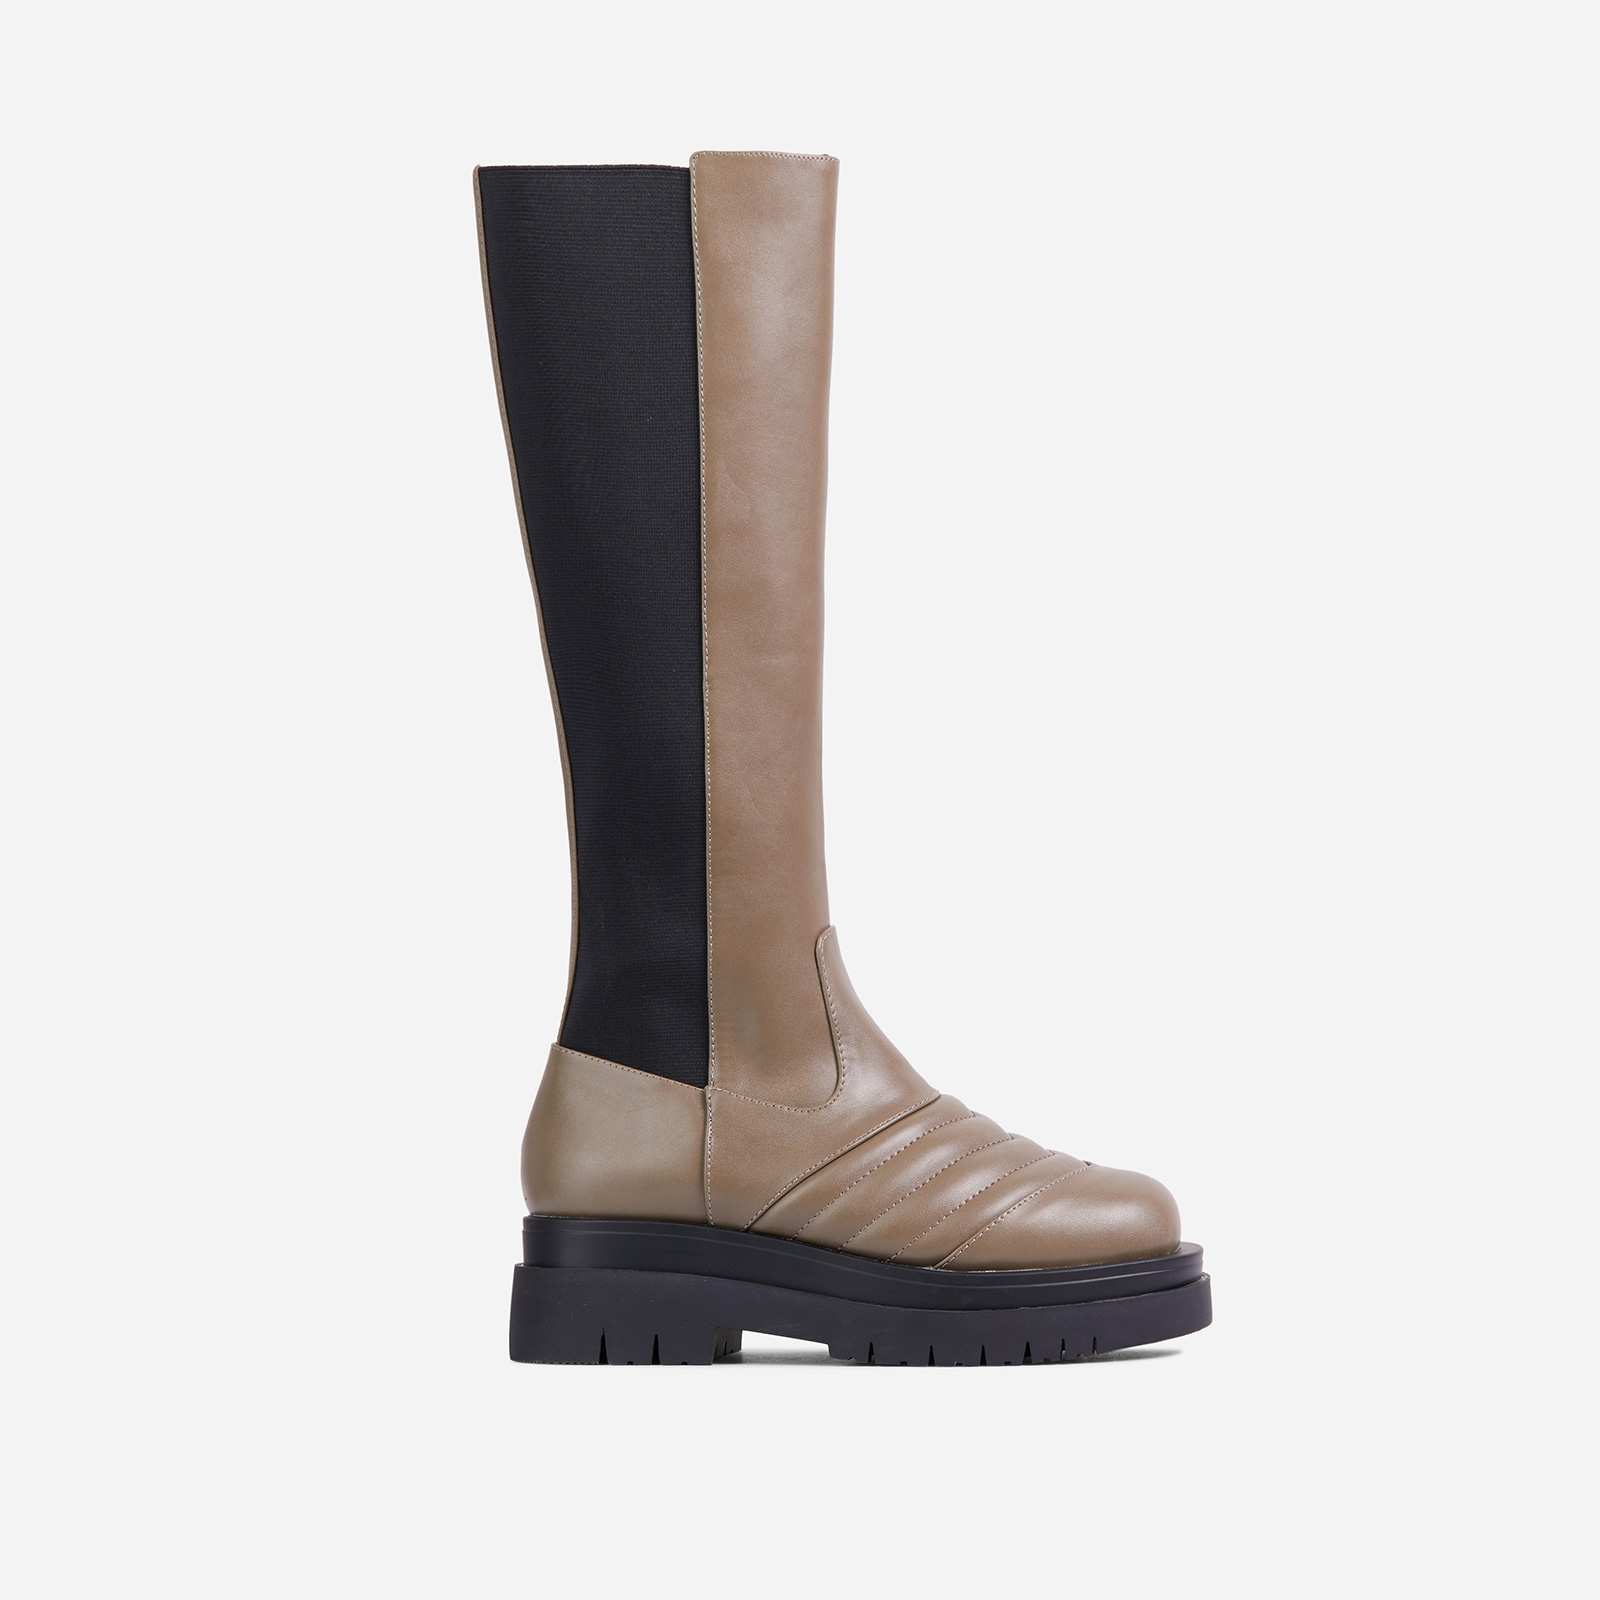 Jax Stitch Detail Chunky Sole Elasticated Knee High Long Biker Boot In Khaki Green Faux Leather